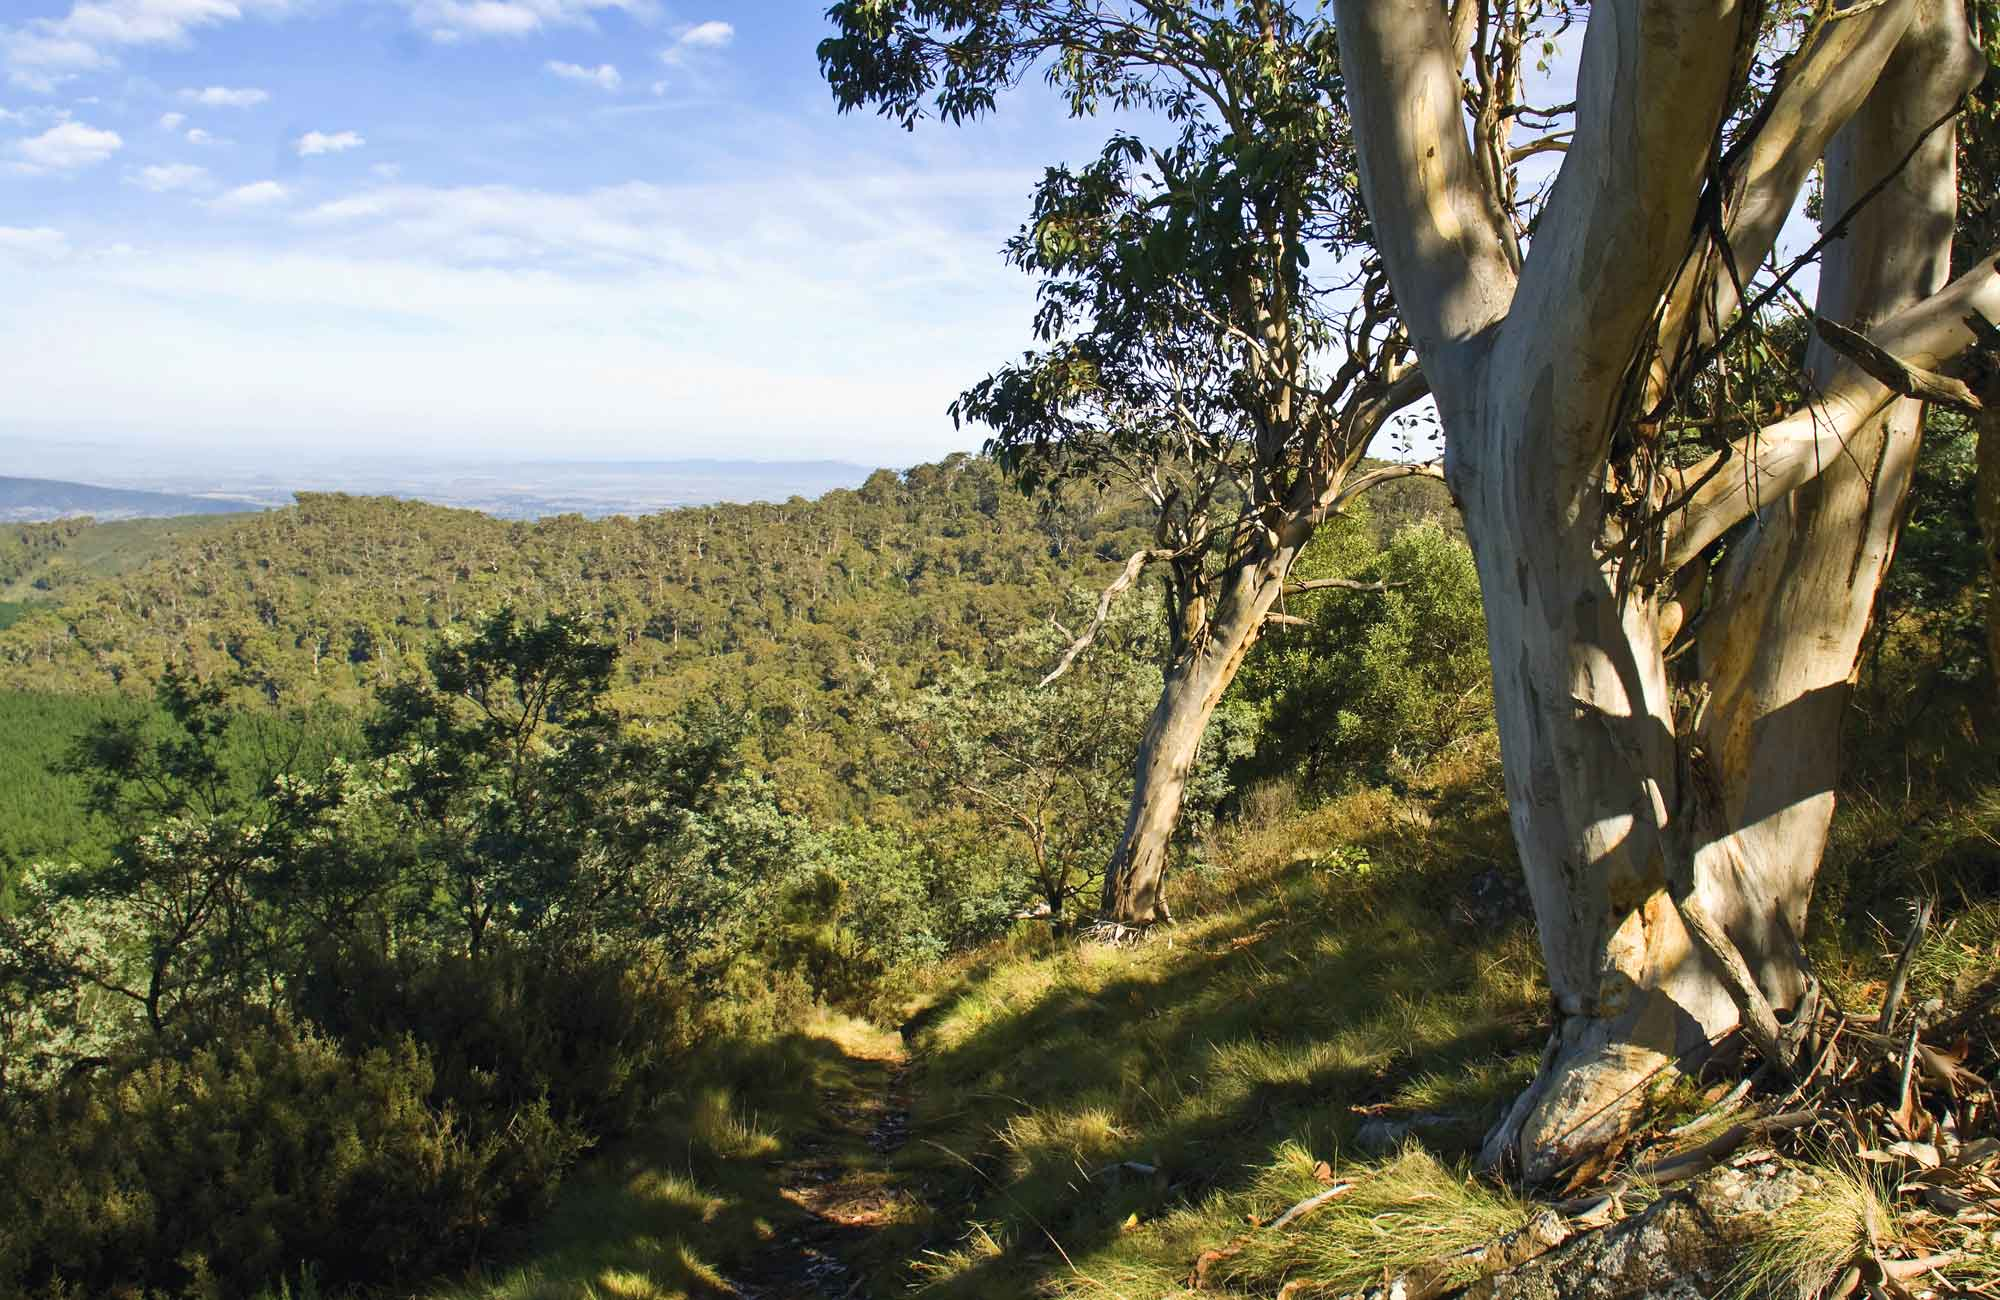 Landscape in Mount Canobolas State Conservation Area. Photo credit: Boris Hlavica © DPIE